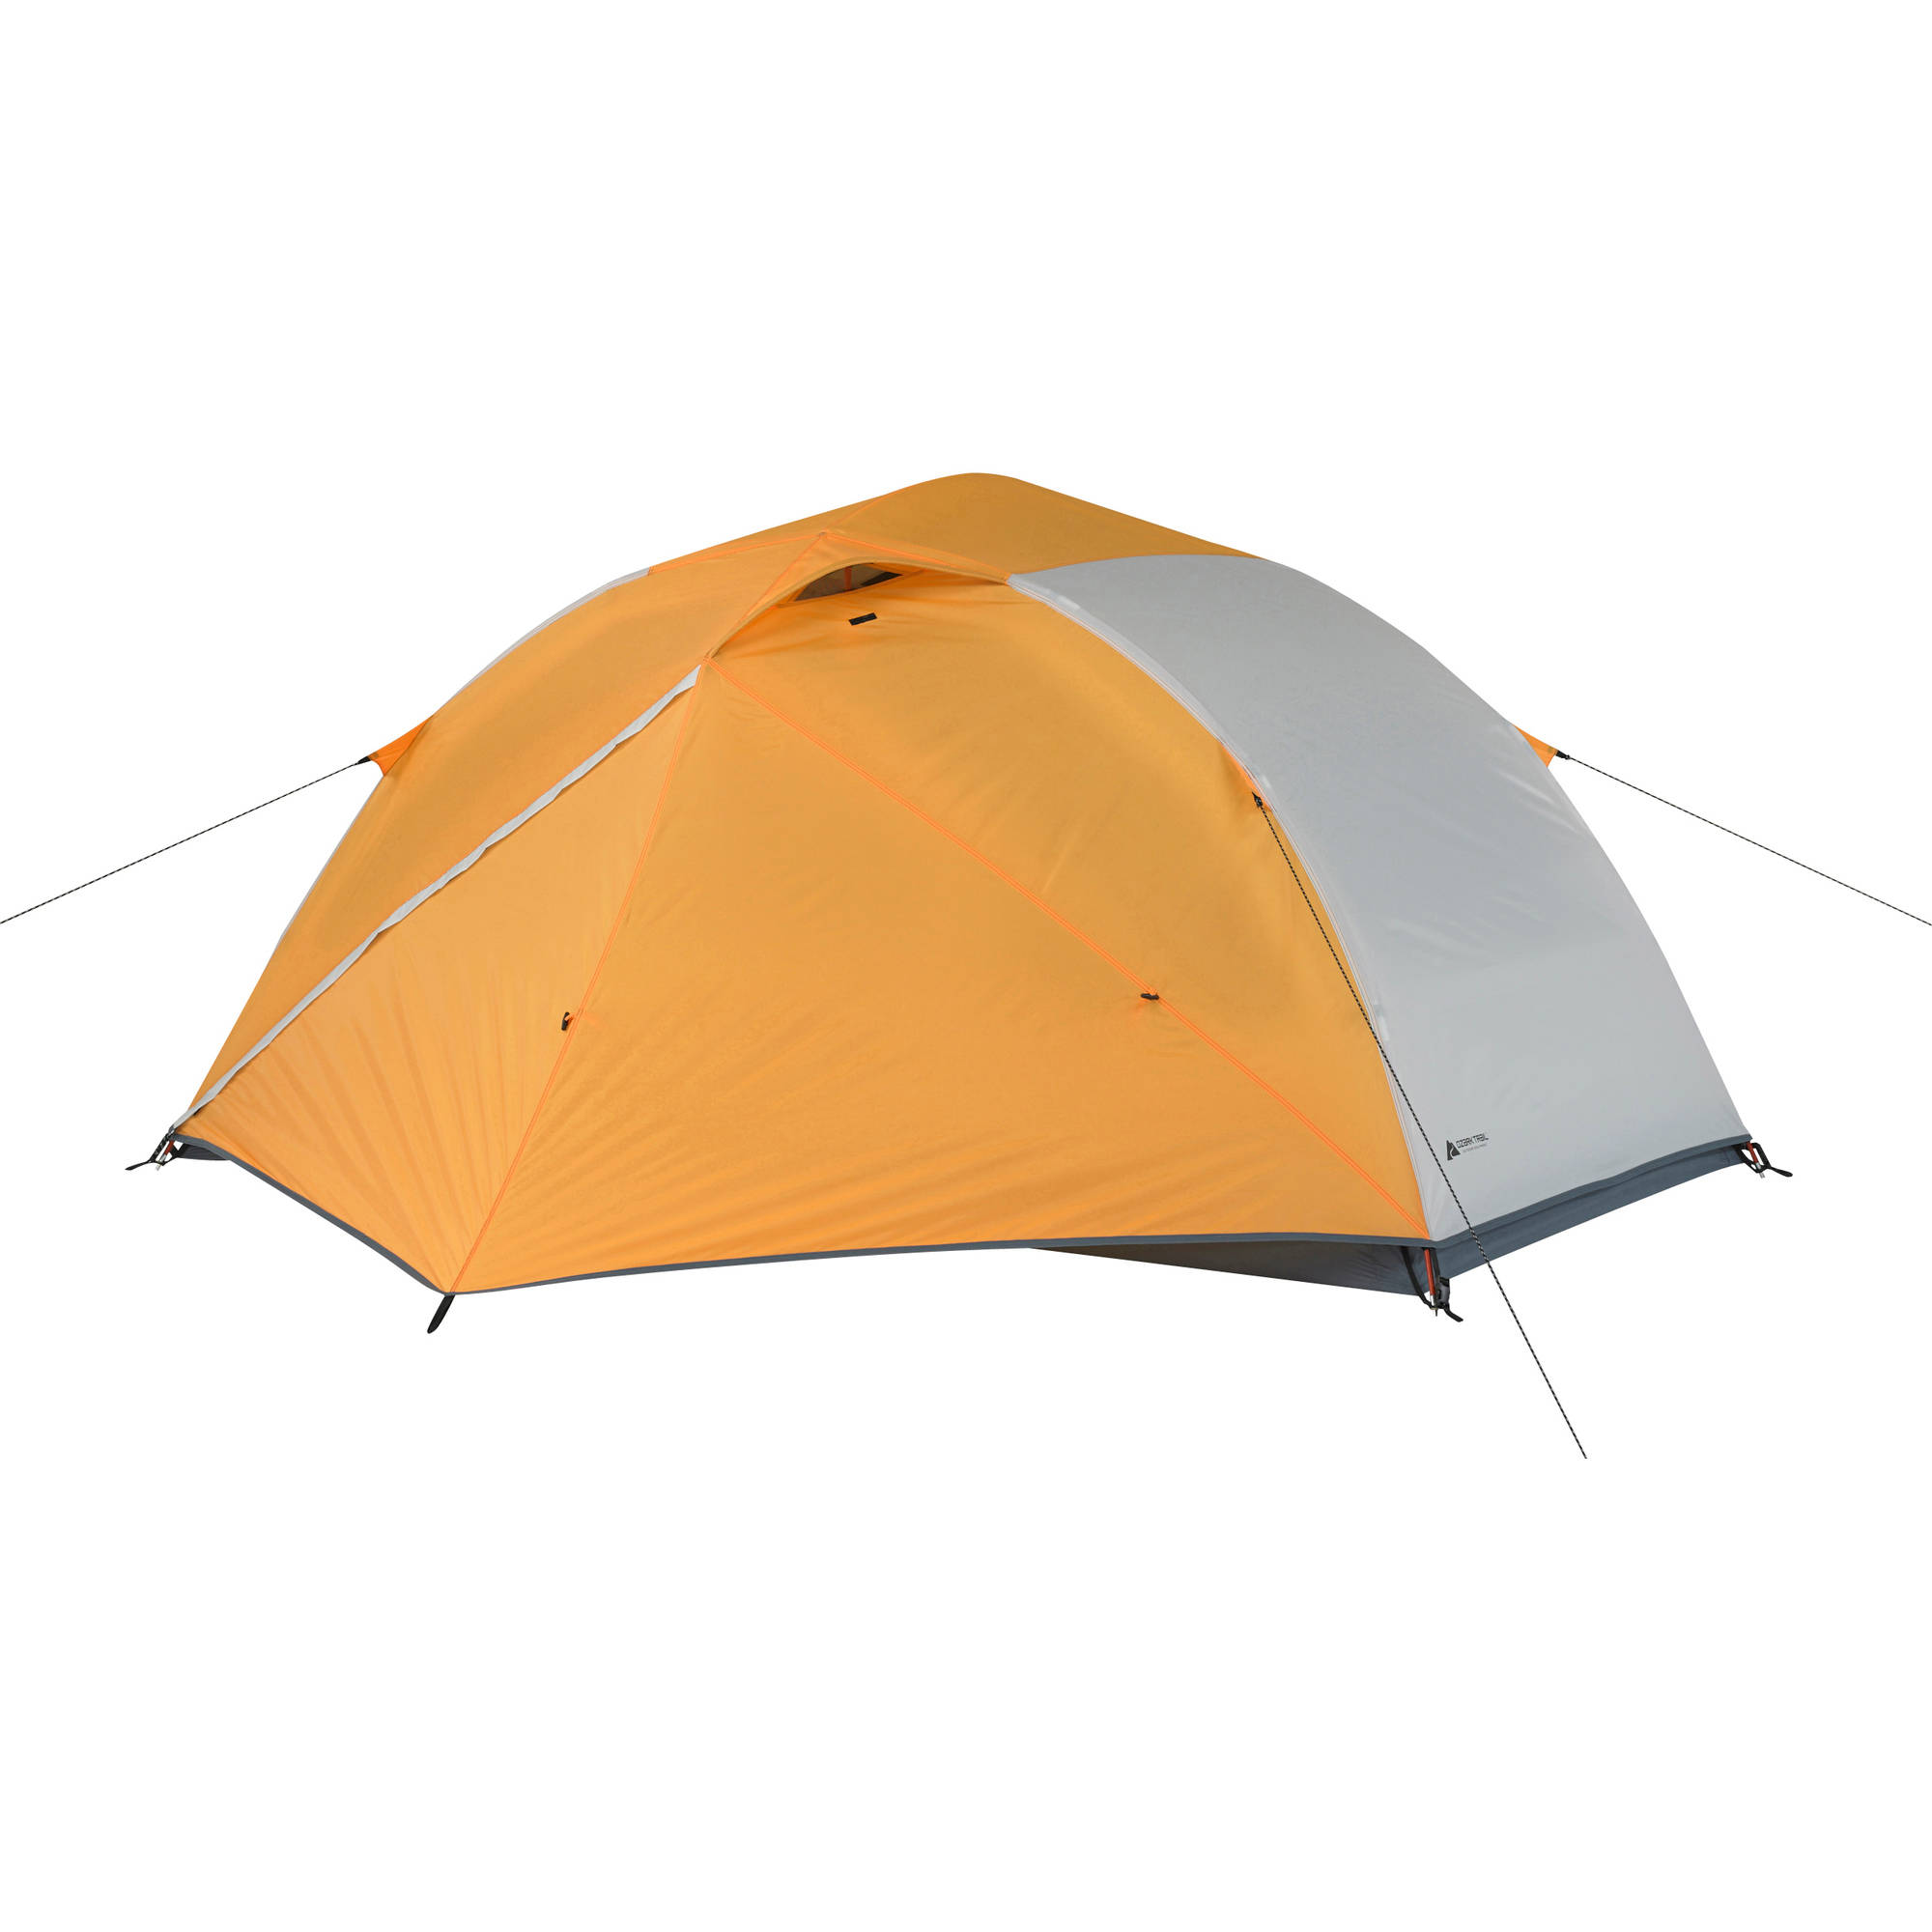 sc 1 st  Walmart & Ozark Trail 4-Season 2-Person Hiker Tent - Walmart.com